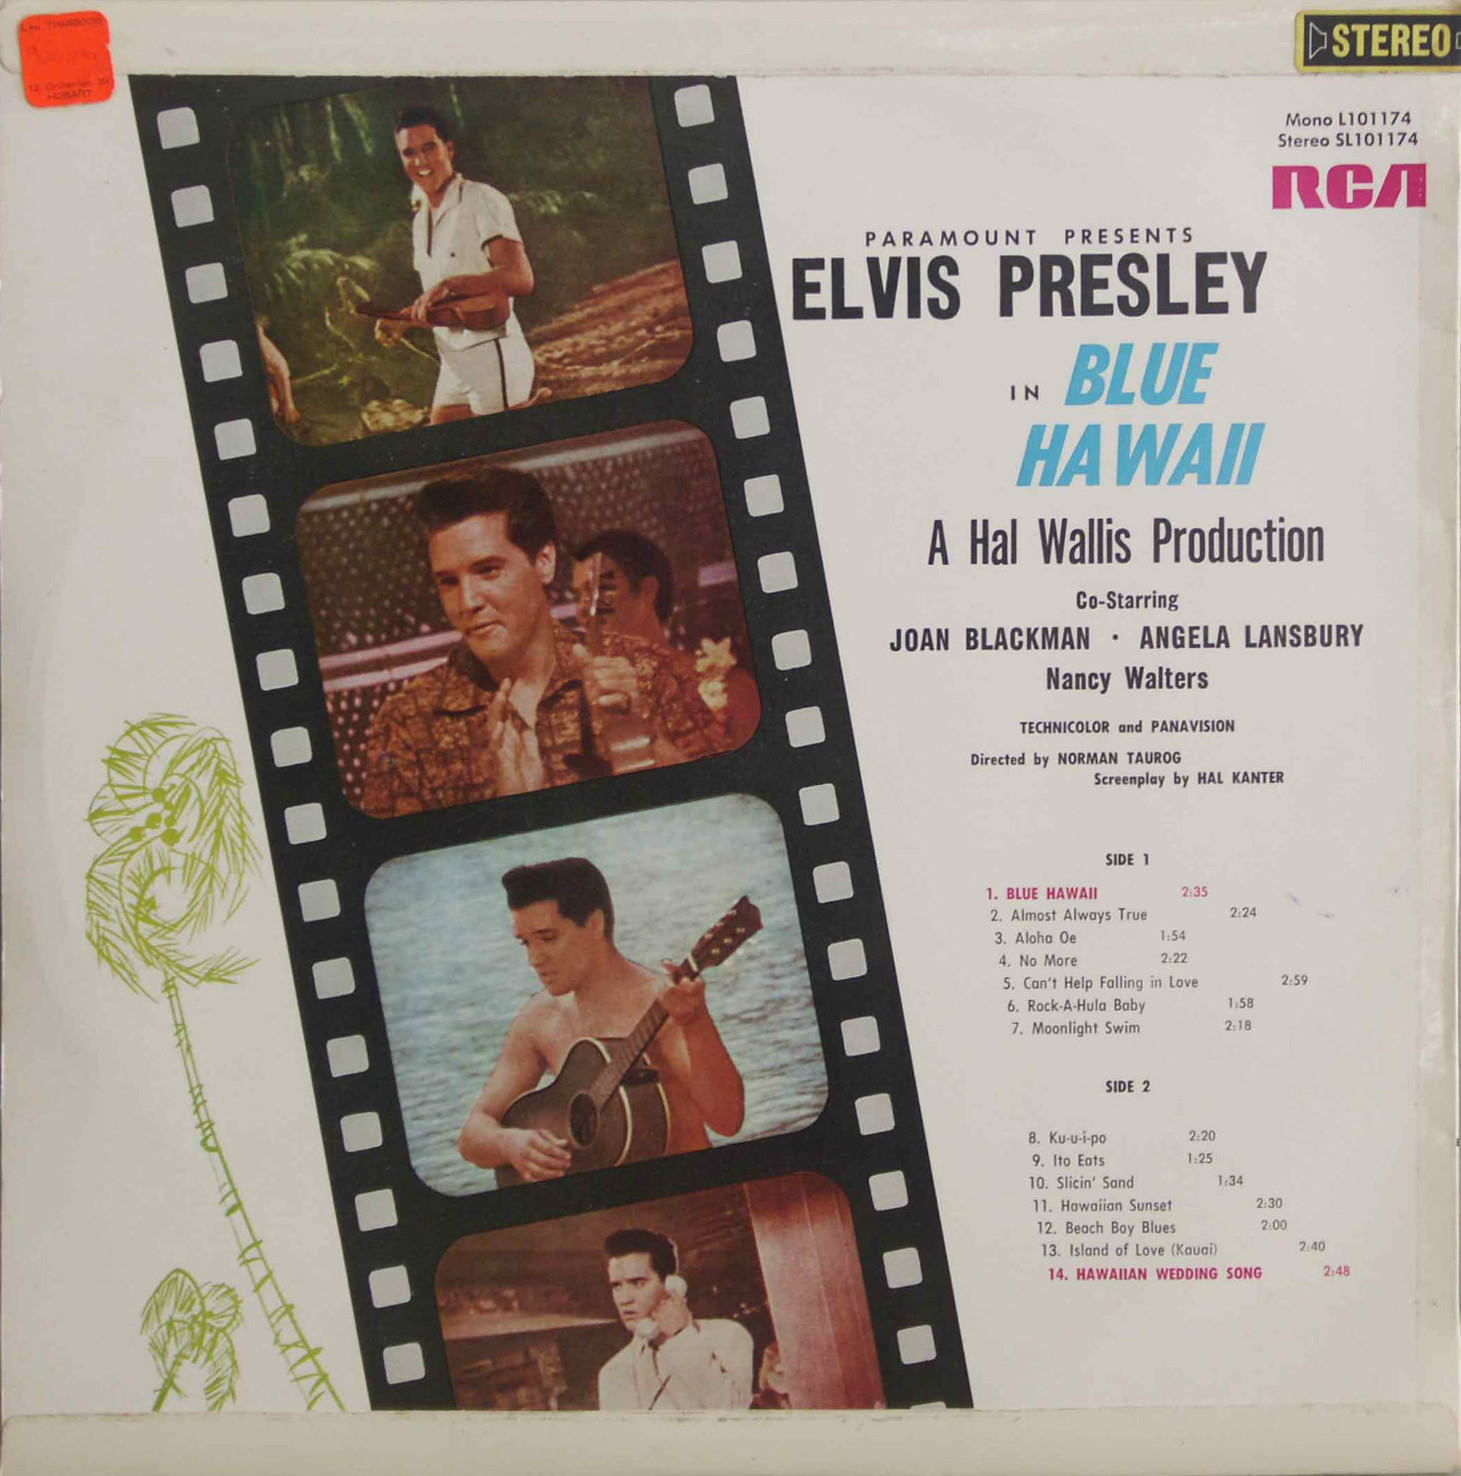 Hawaii - BLUE HAWAII Sl101174eimra5